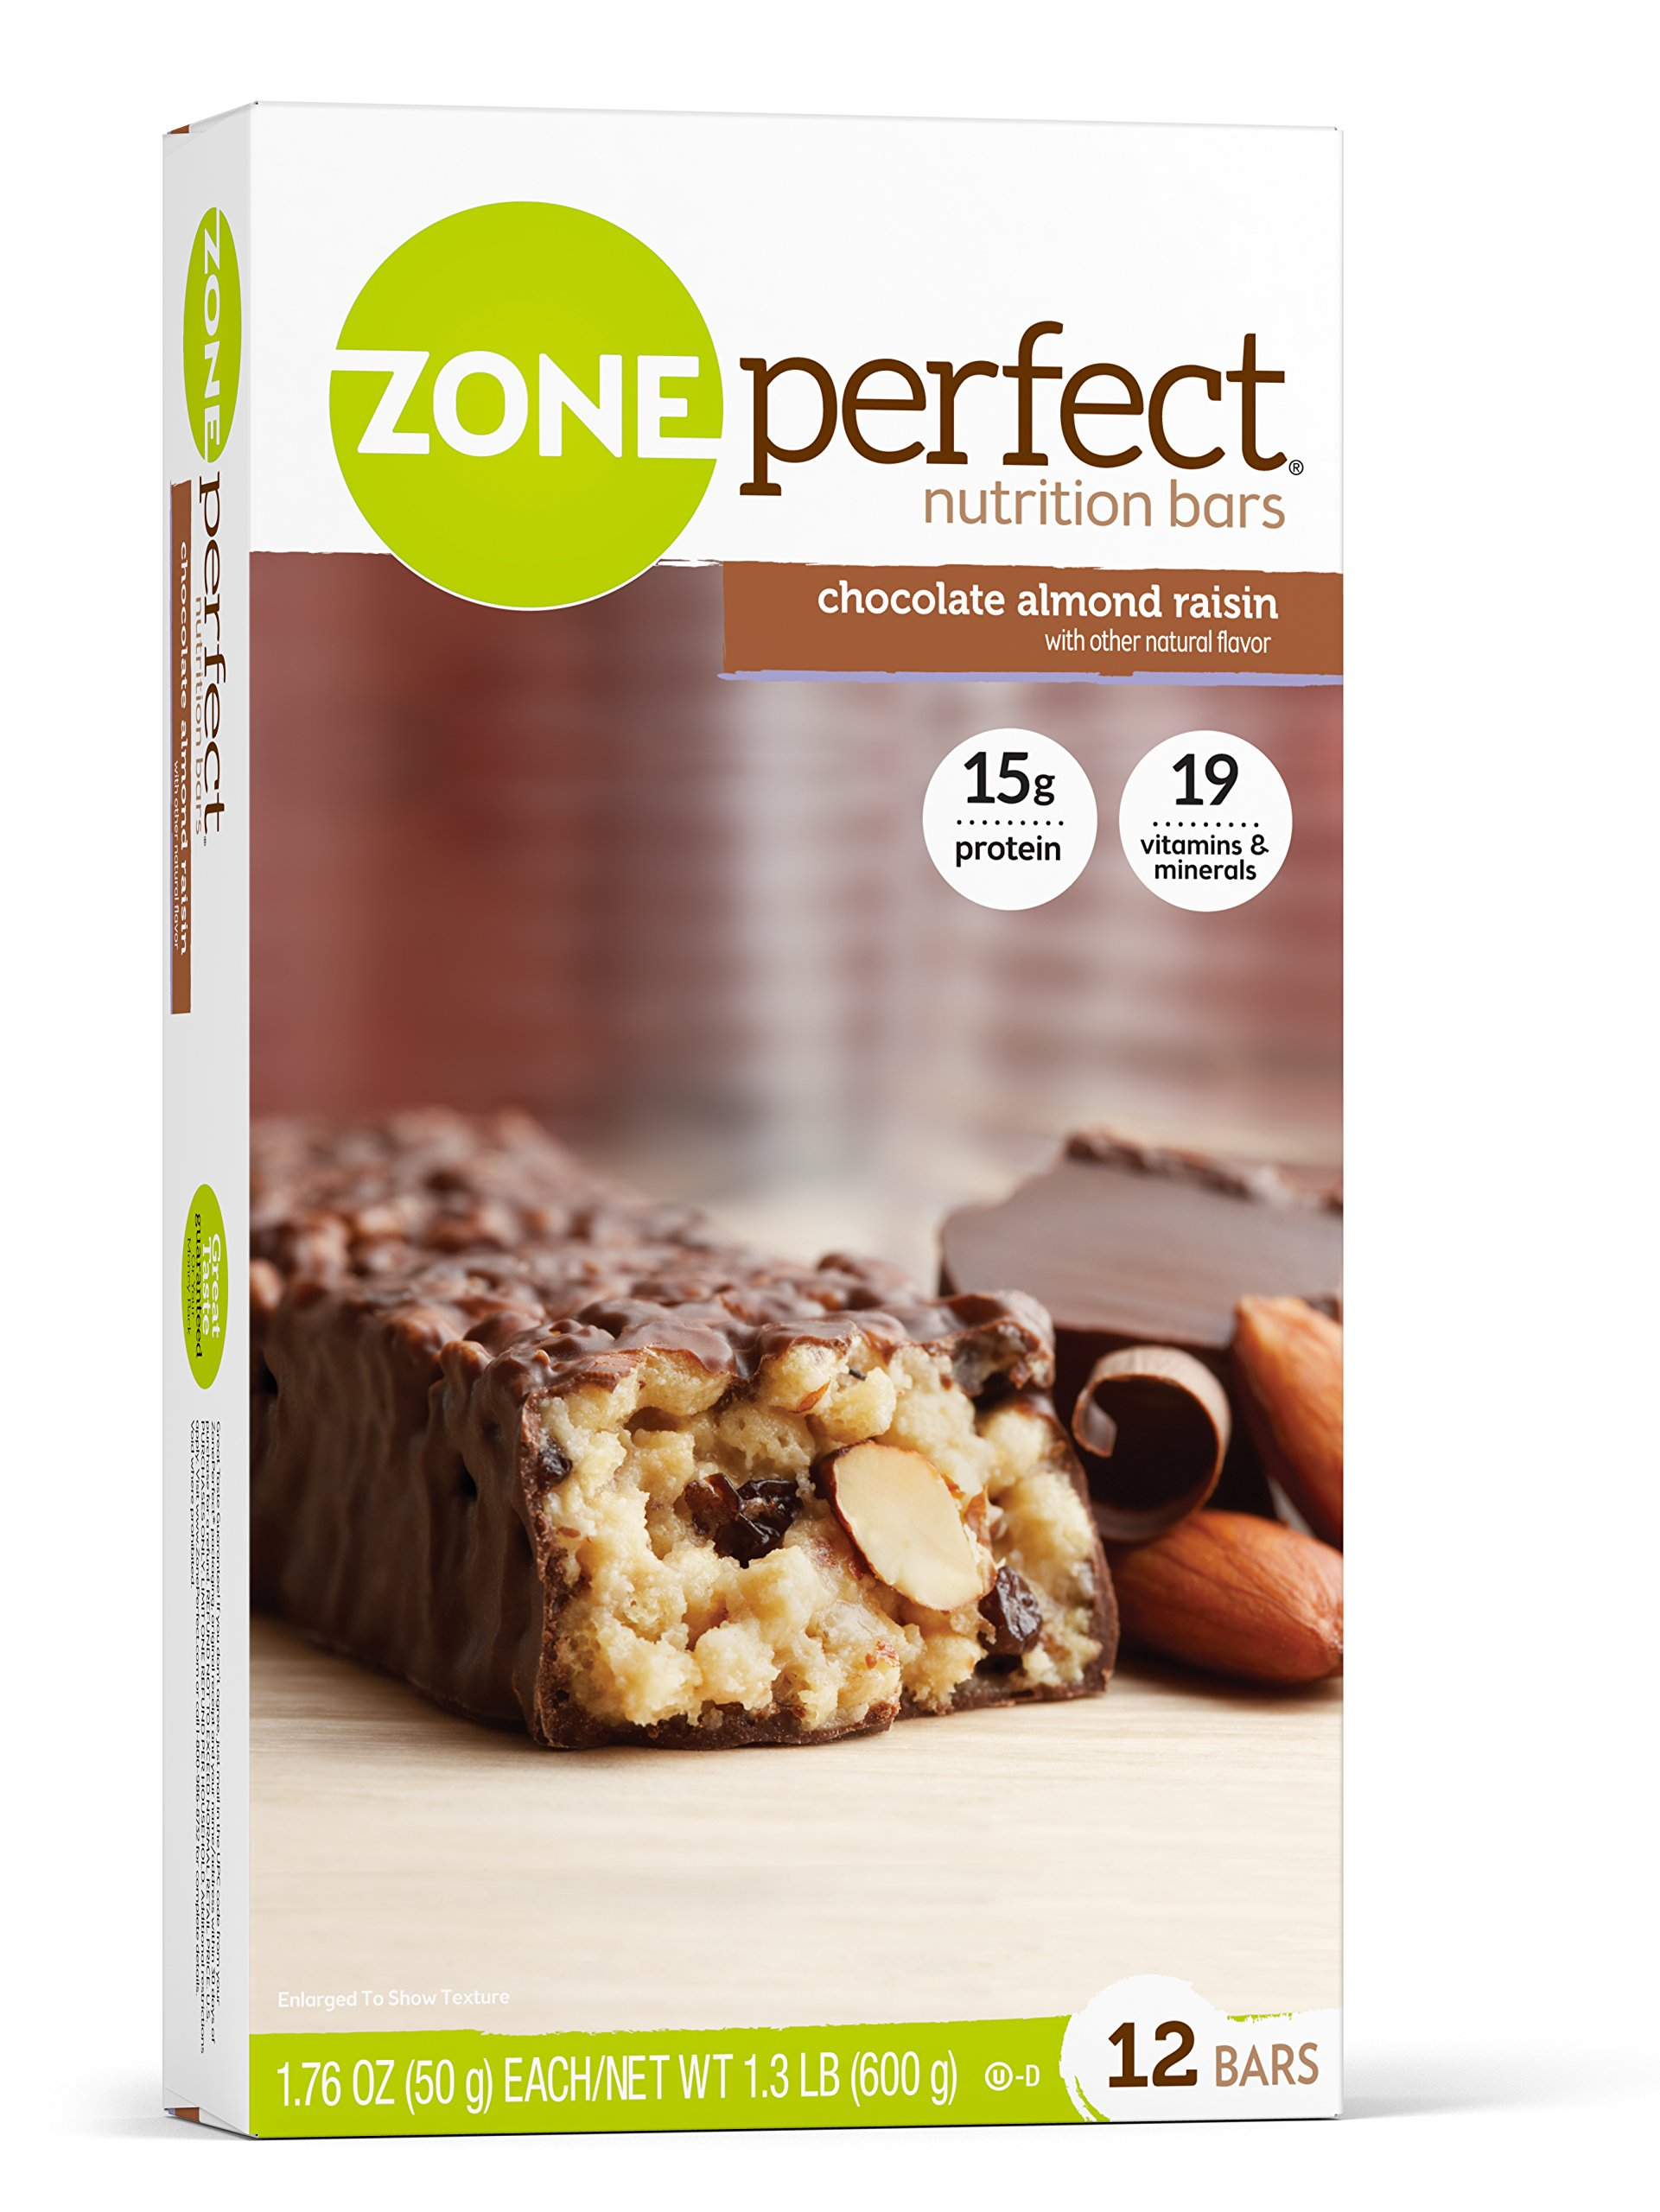 Zoneperfect Nutrition Bars Chocolate Almond Raisin 1.76 Oz 12 Count 18